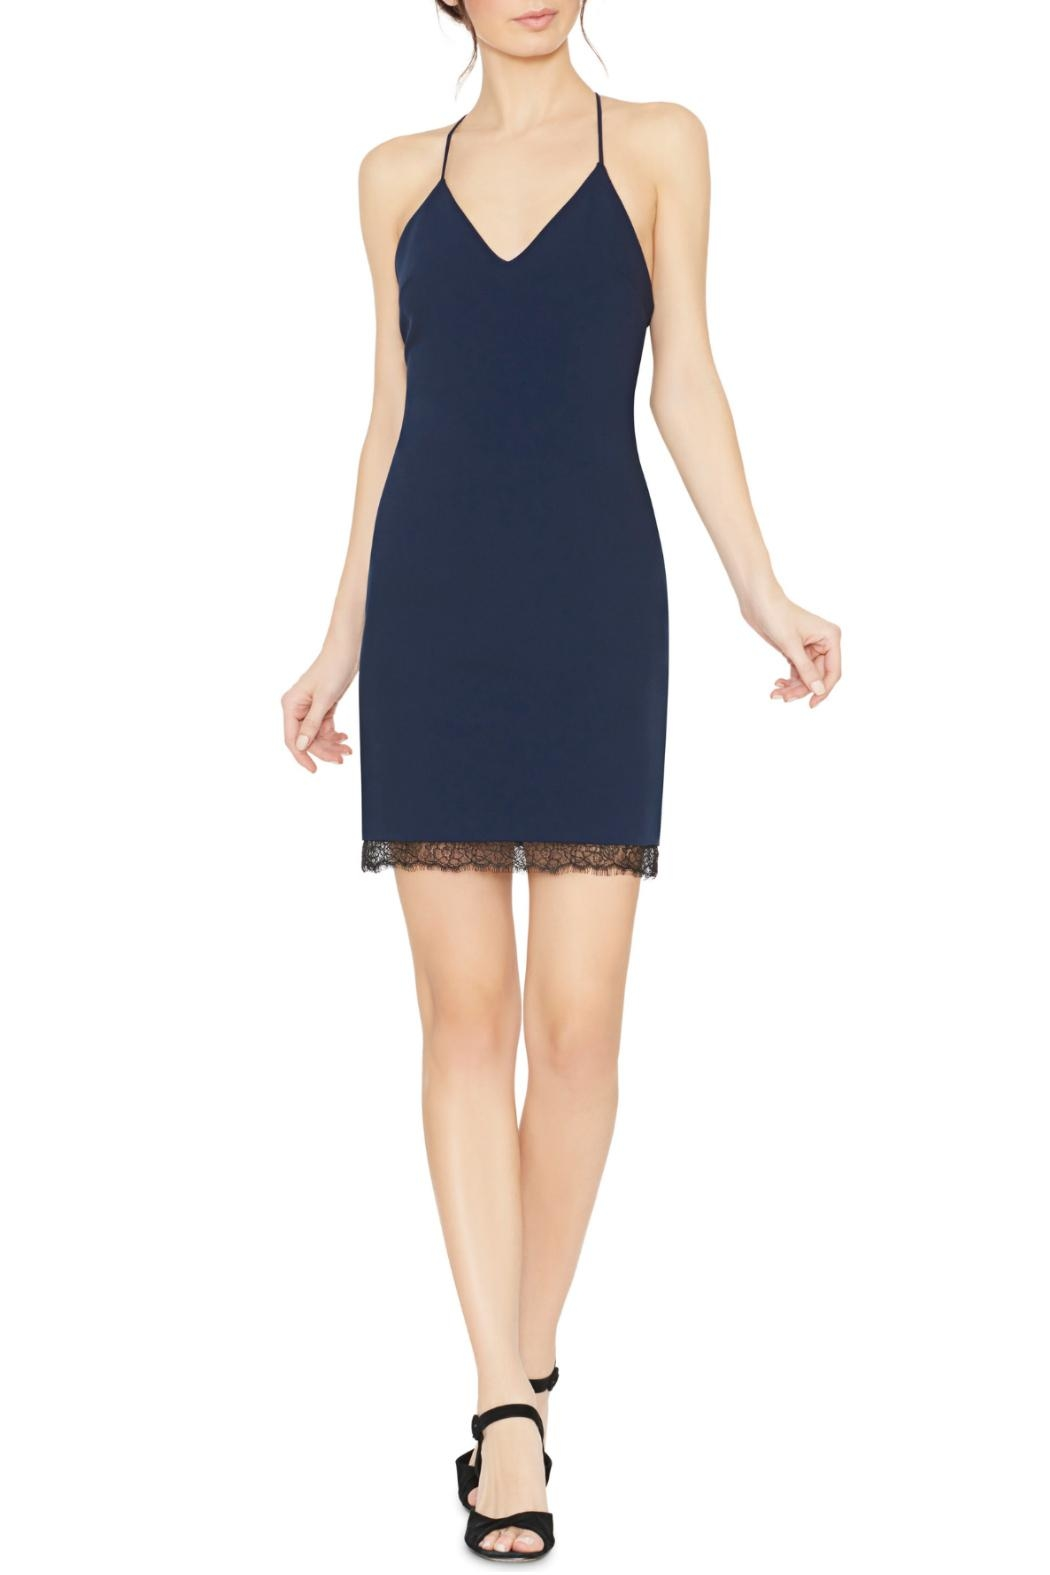 Alice + Olivia Navy Sleeveless Sheath Dress - Main Image